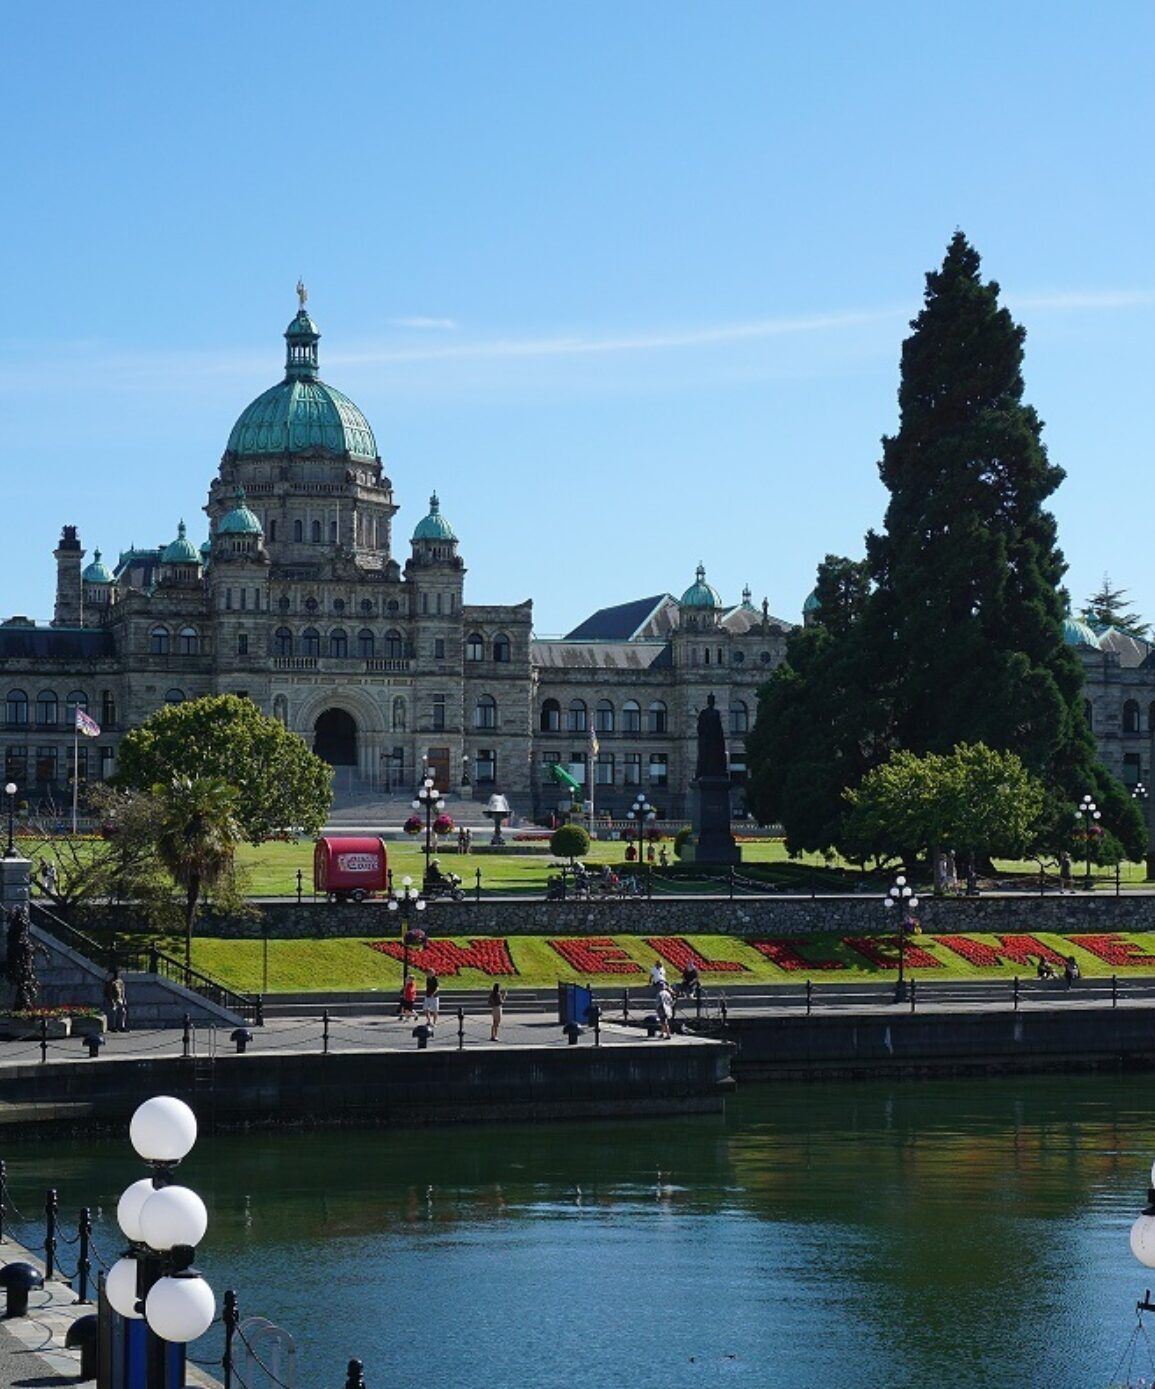 News Release: Business Council of B.C. responds to provincial budget